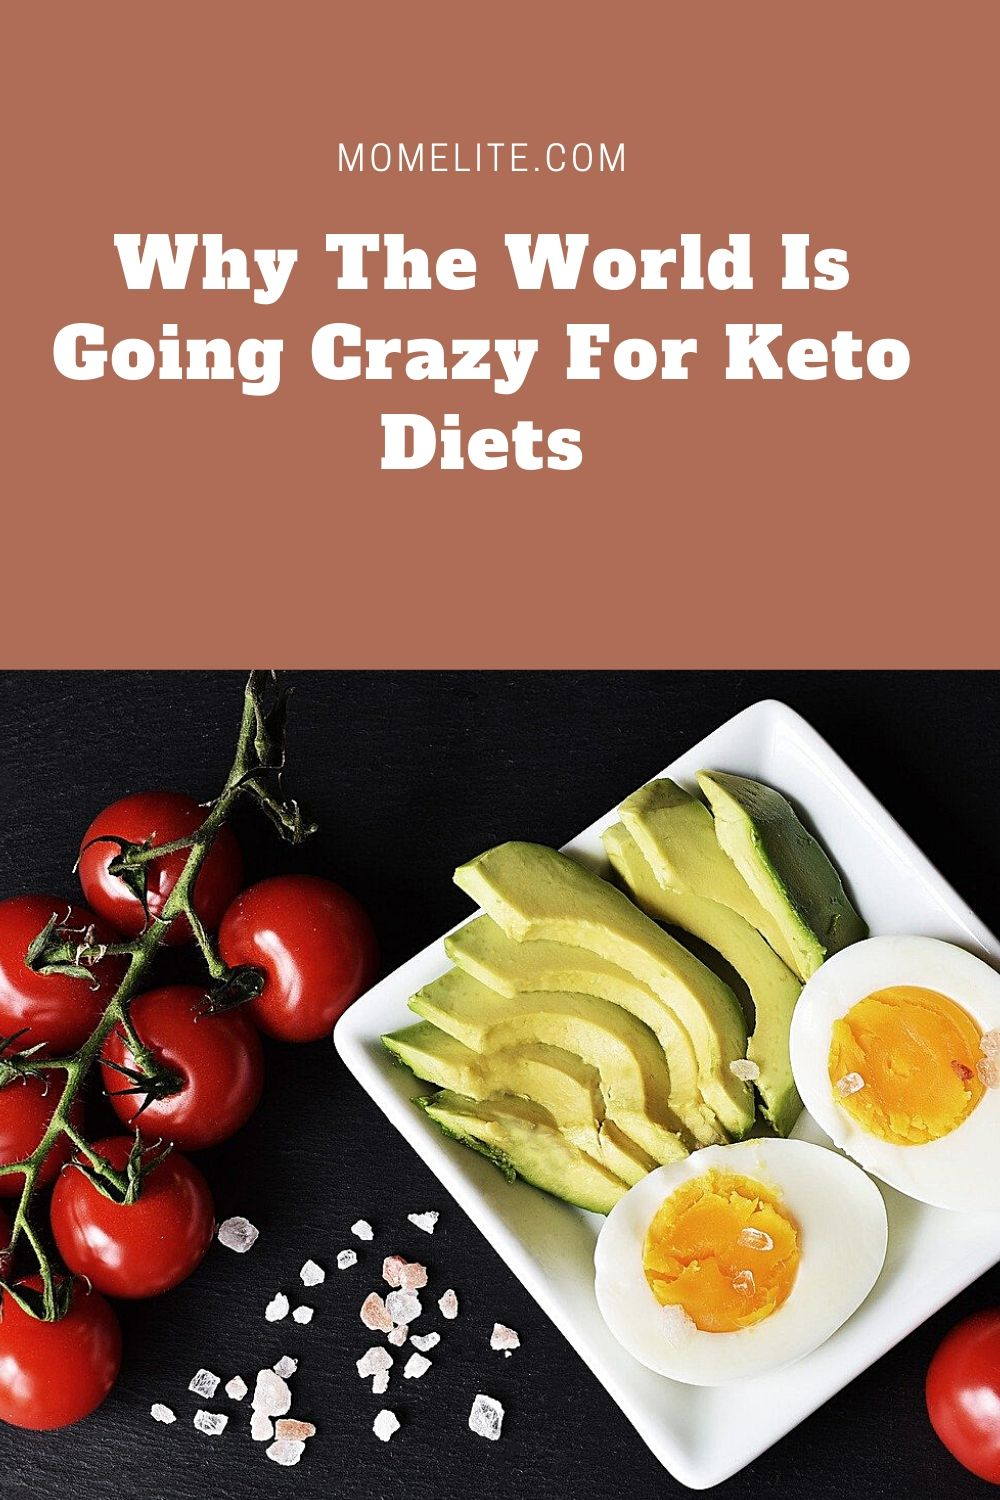 Why The World Is Going Crazy For Keto Diets